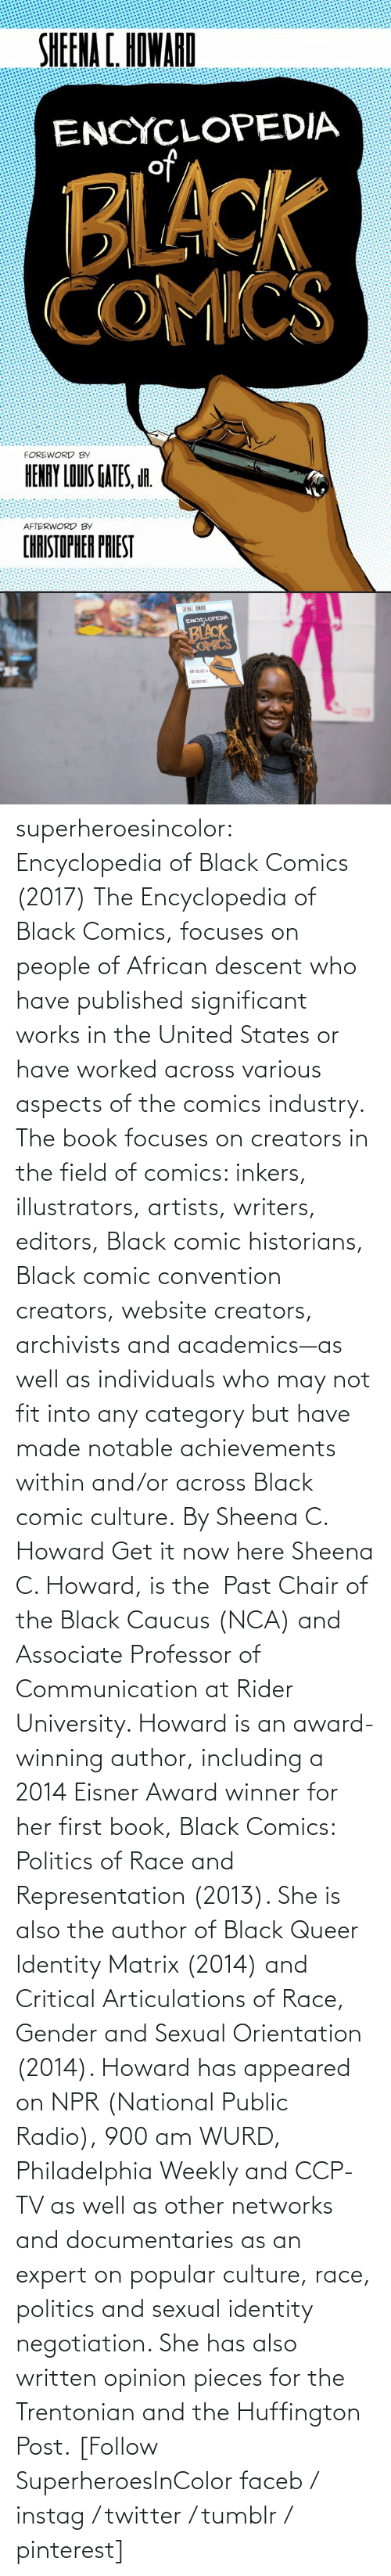 gender: superheroesincolor: Encyclopedia of Black Comics (2017) The Encyclopedia of Black Comics, focuses on people of African descent who have published significant works in the United States or have worked across various aspects of the comics industry.  The book focuses on creators in the field of comics: inkers, illustrators, artists, writers, editors, Black comic historians, Black comic convention creators, website creators, archivists and academics—as well as individuals who may not fit into any category but have made notable achievements within and/or across Black comic culture. By Sheena C. Howard Get it now here  Sheena C. Howard, is the  Past Chair of the Black Caucus (NCA) and Associate Professor of Communication at Rider University. Howard is an award-winning author, including a 2014 Eisner Award winner for her first book, Black Comics: Politics of Race and Representation (2013). She is also the author of Black Queer Identity Matrix (2014) and Critical Articulations of Race, Gender and Sexual Orientation (2014). Howard has appeared on NPR (National Public Radio), 900 am WURD, Philadelphia Weekly and CCP-TV as well as other networks and documentaries as an expert on popular culture, race, politics and sexual identity negotiation. She has also written opinion pieces for the Trentonian and the Huffington Post.   [Follow SuperheroesInColor faceb / instag / twitter / tumblr / pinterest]